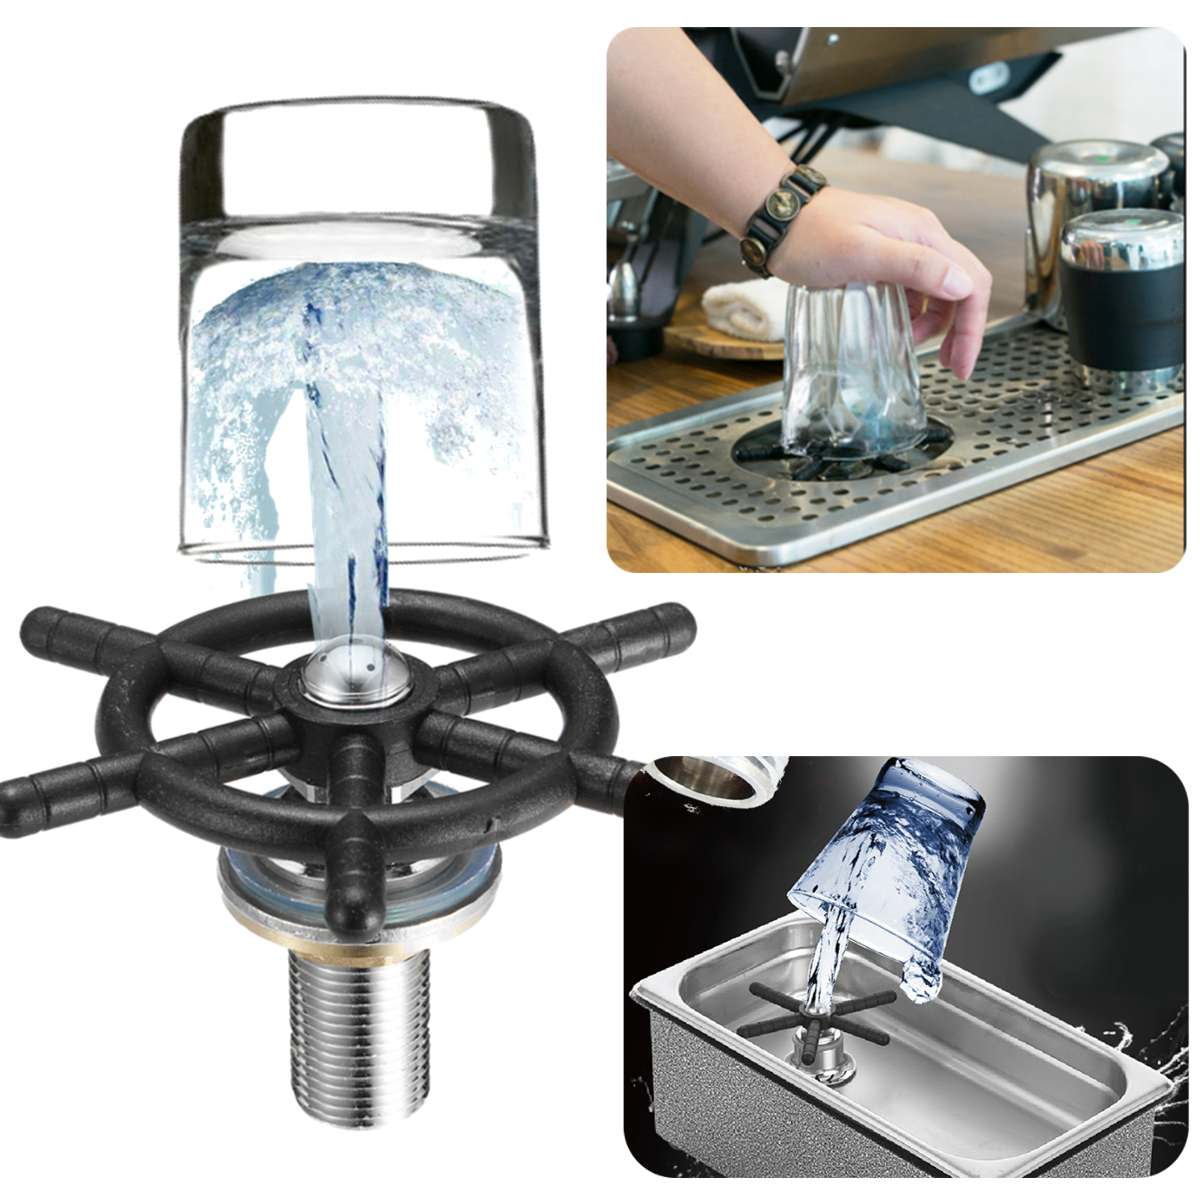 Automatic Stainless Steel Cup Holder Washer Bar Wash Cup Coffee High Pressure Milk Tea Bar Embedded Sink Faucet